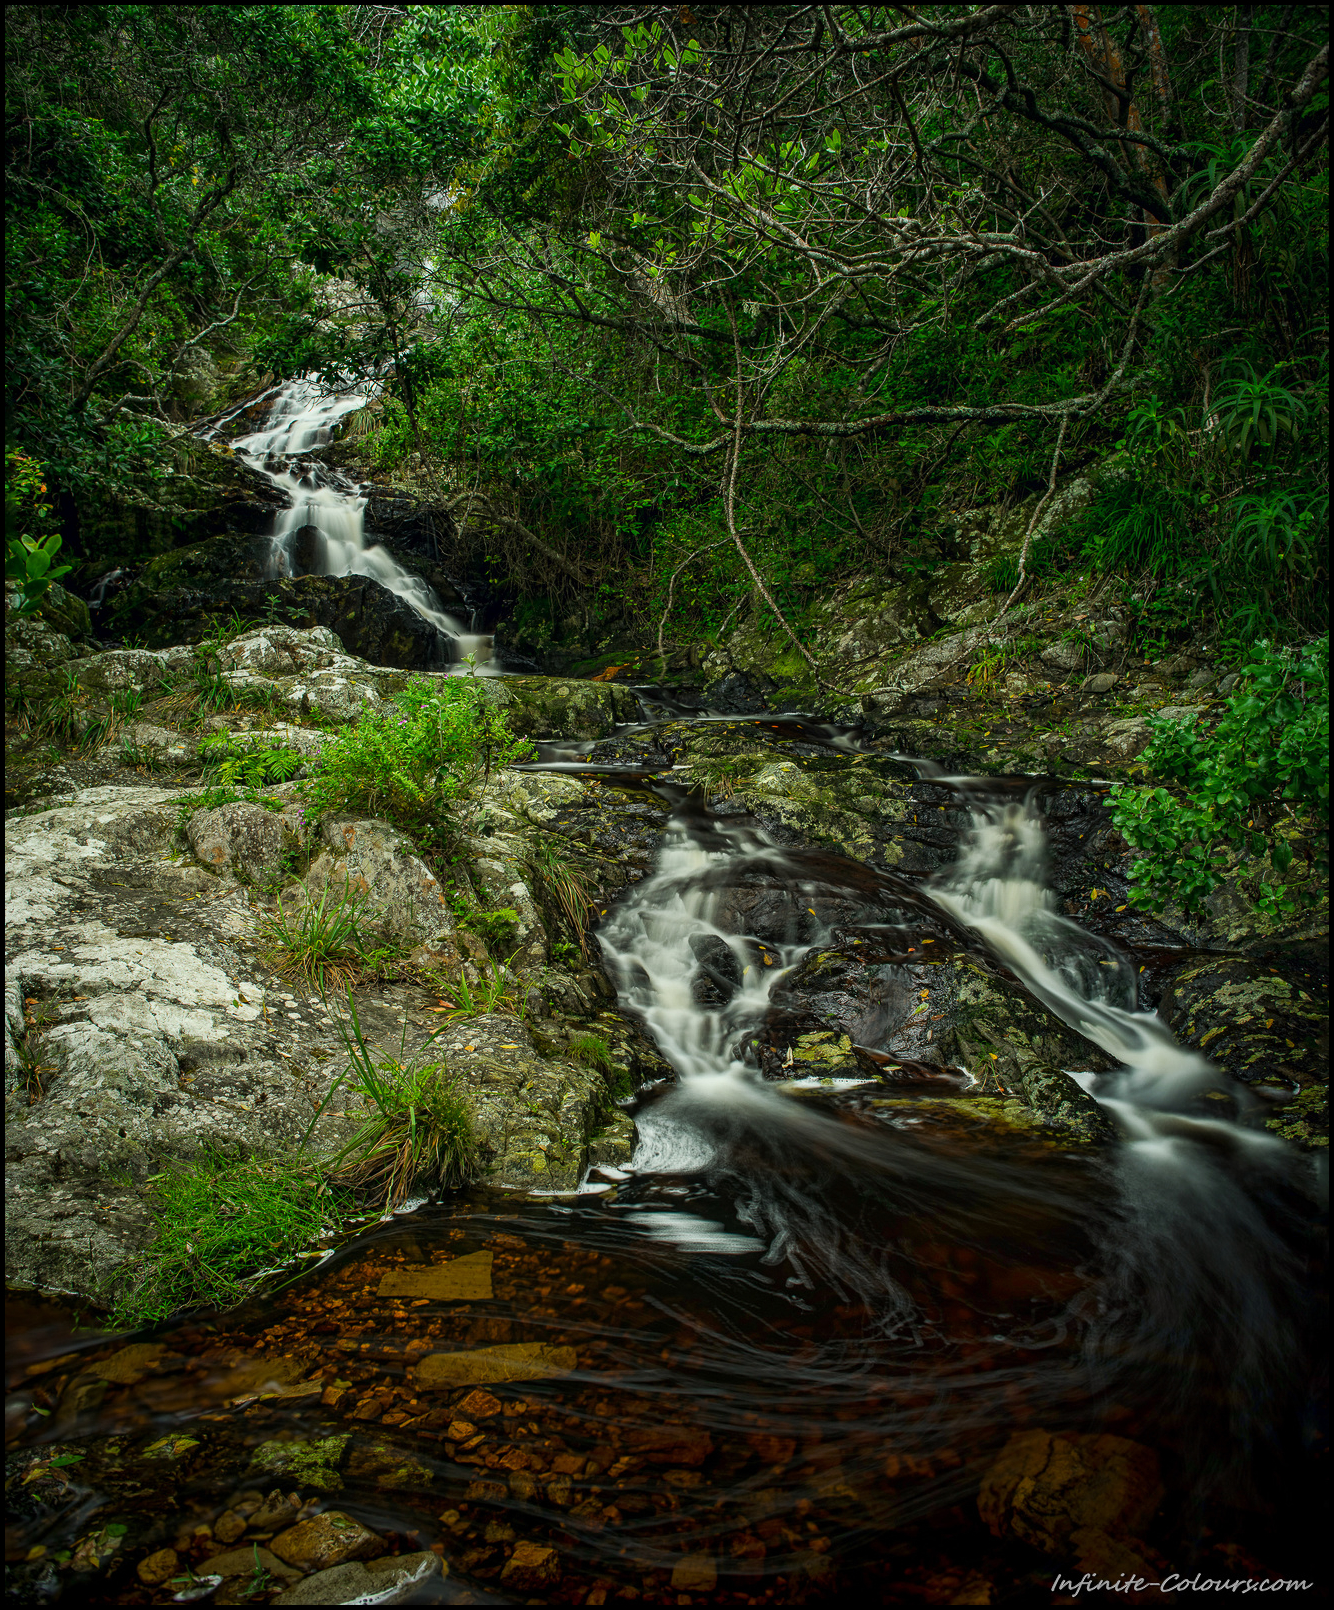 Small waterfalls are plentiful along the entire hike and usually provide good sources of drinking water